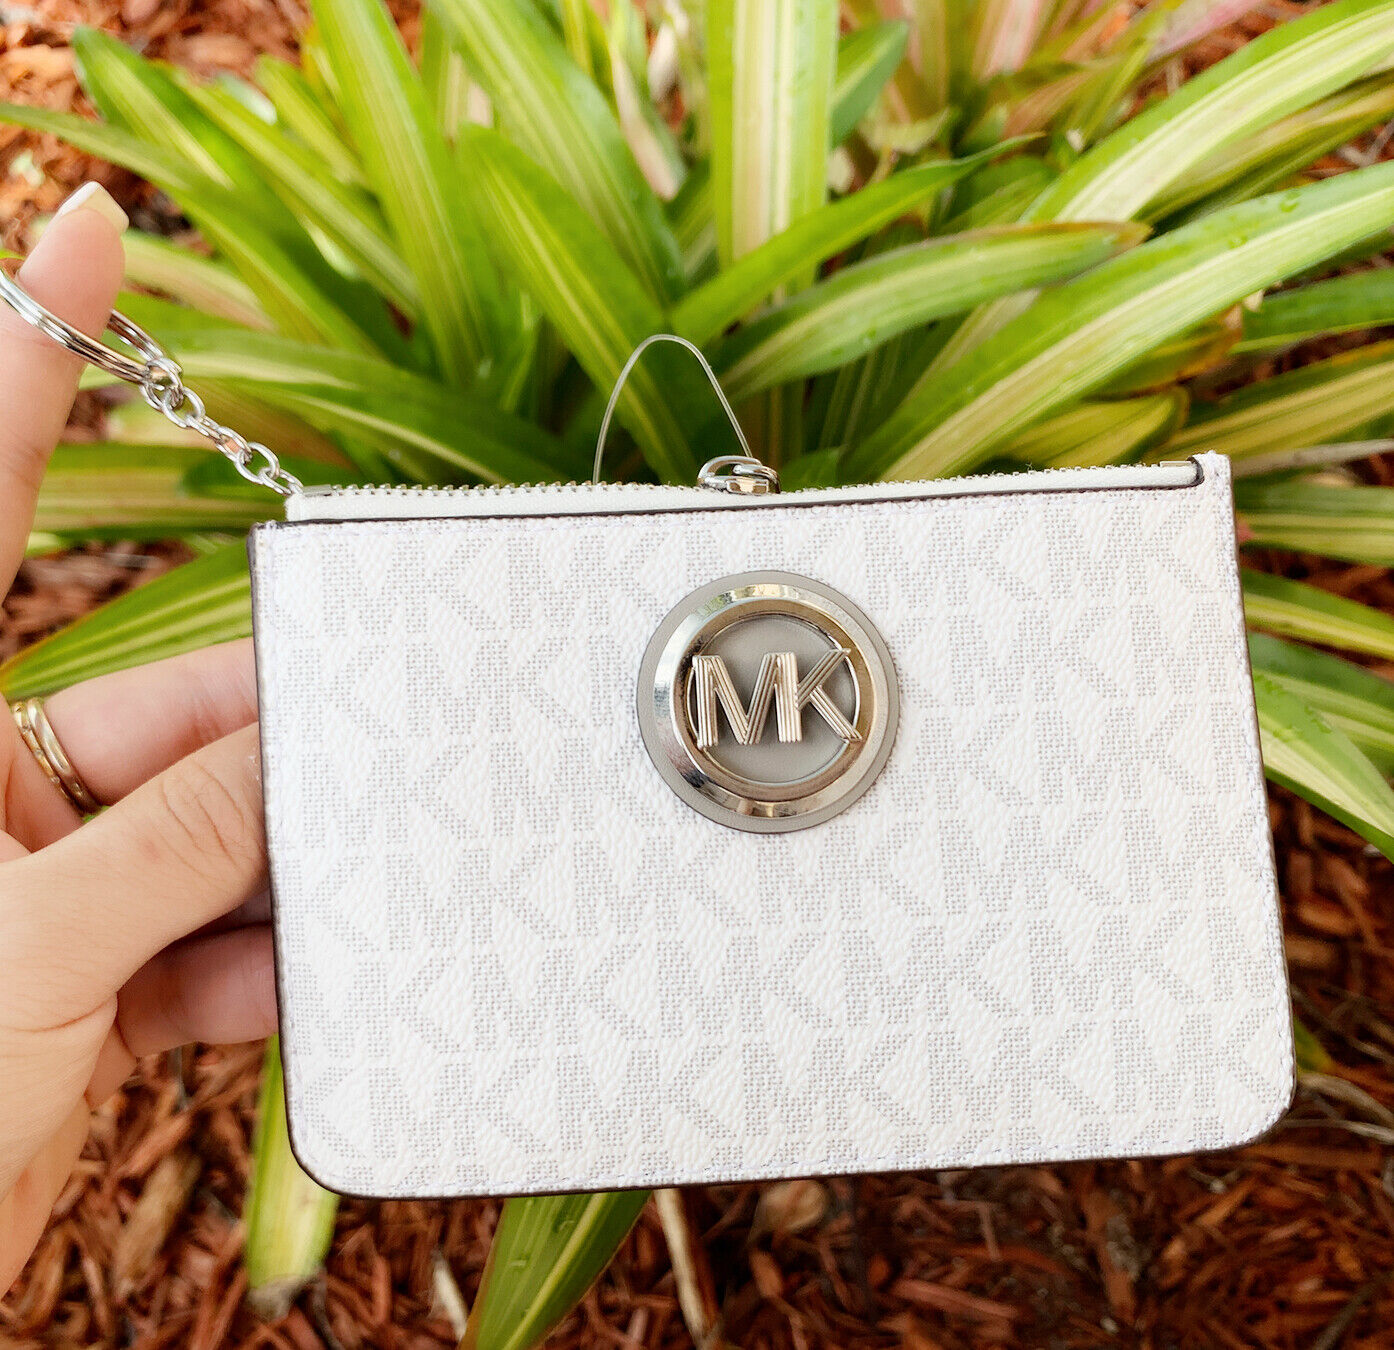 Michael Kors Jet Set Travel Small Top Zip Coin Pouch ID Holder Key Ring Wallet Fulton White MK Gray